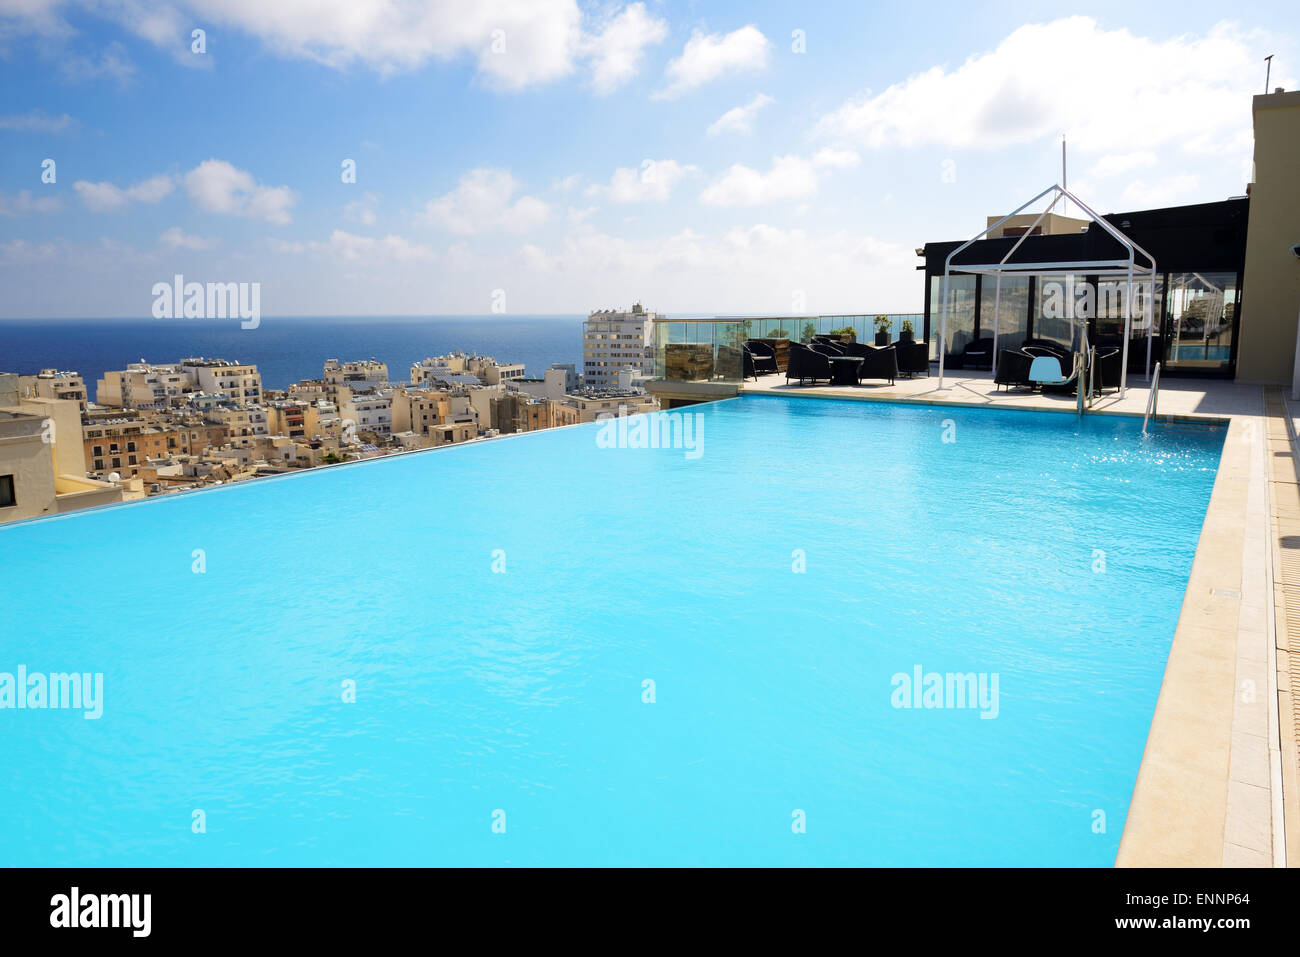 The Swimming Pool On The Top Of Building Of Luxury Hotel Malta Stock Photo 82227660 Alamy